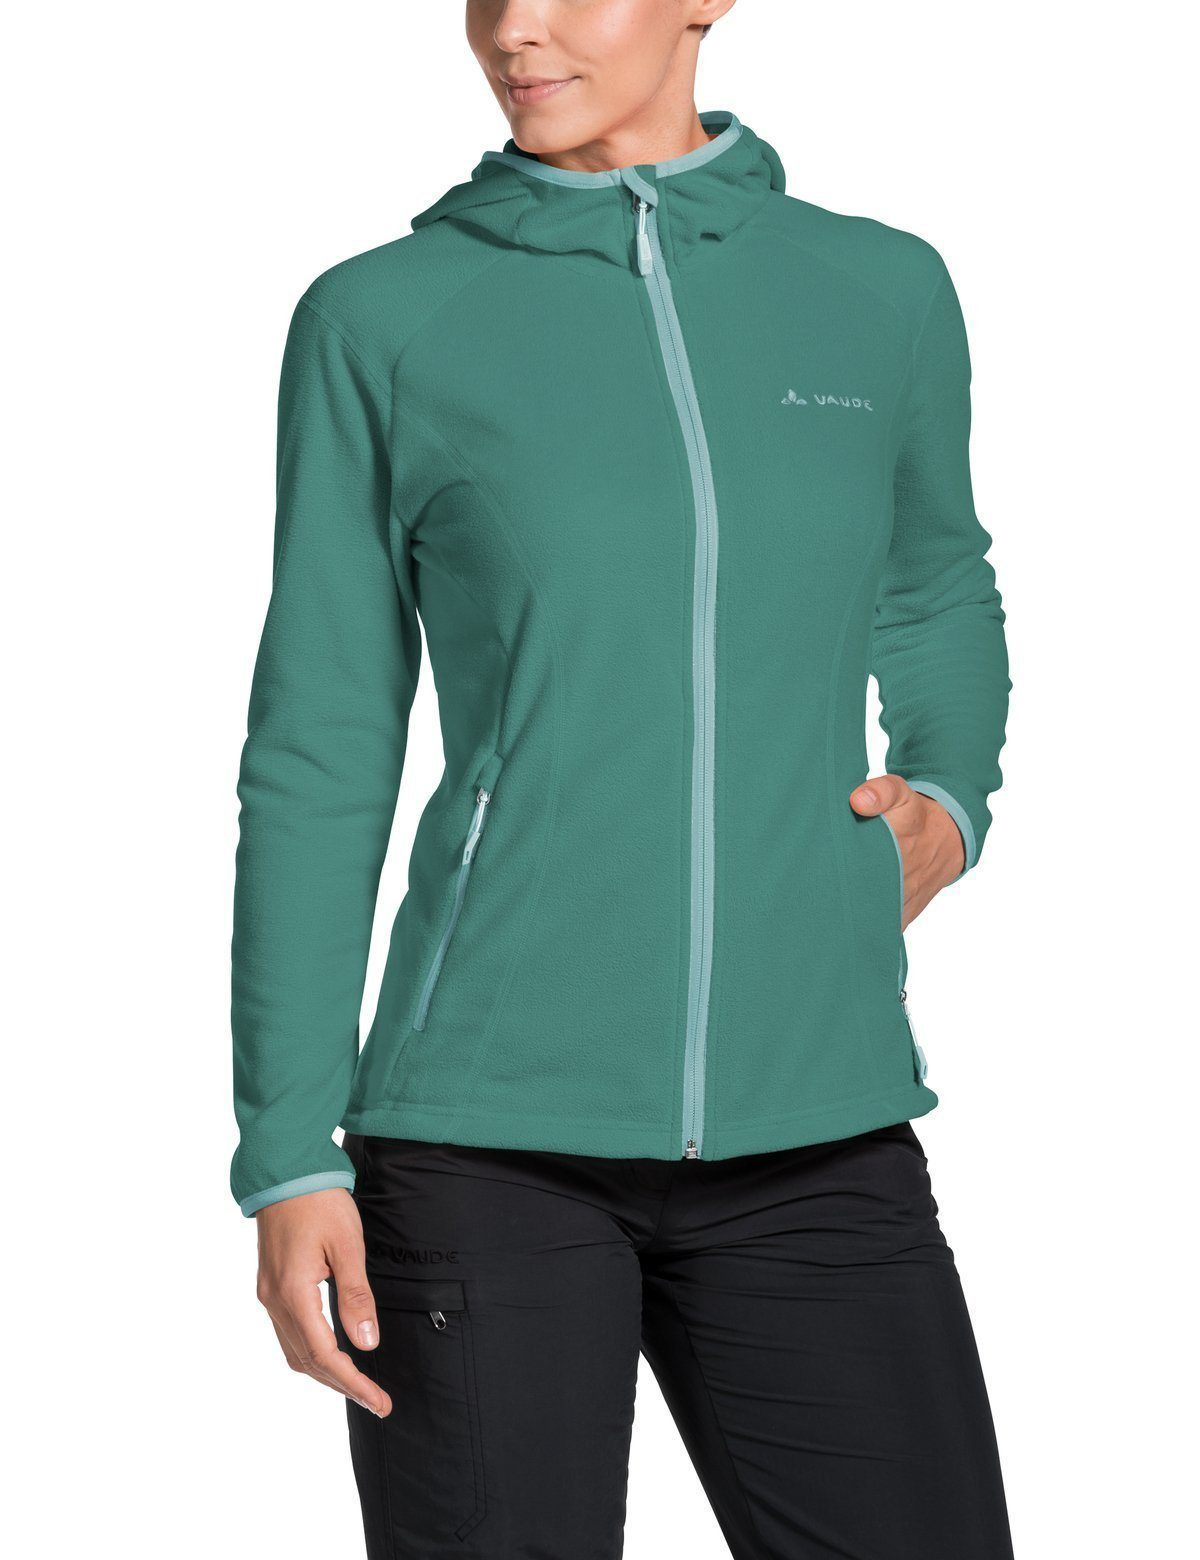 Vaude - W's Sunbury Hoody Jacket - made from high-quality fleece - Weekendbee - sustainable sportswear